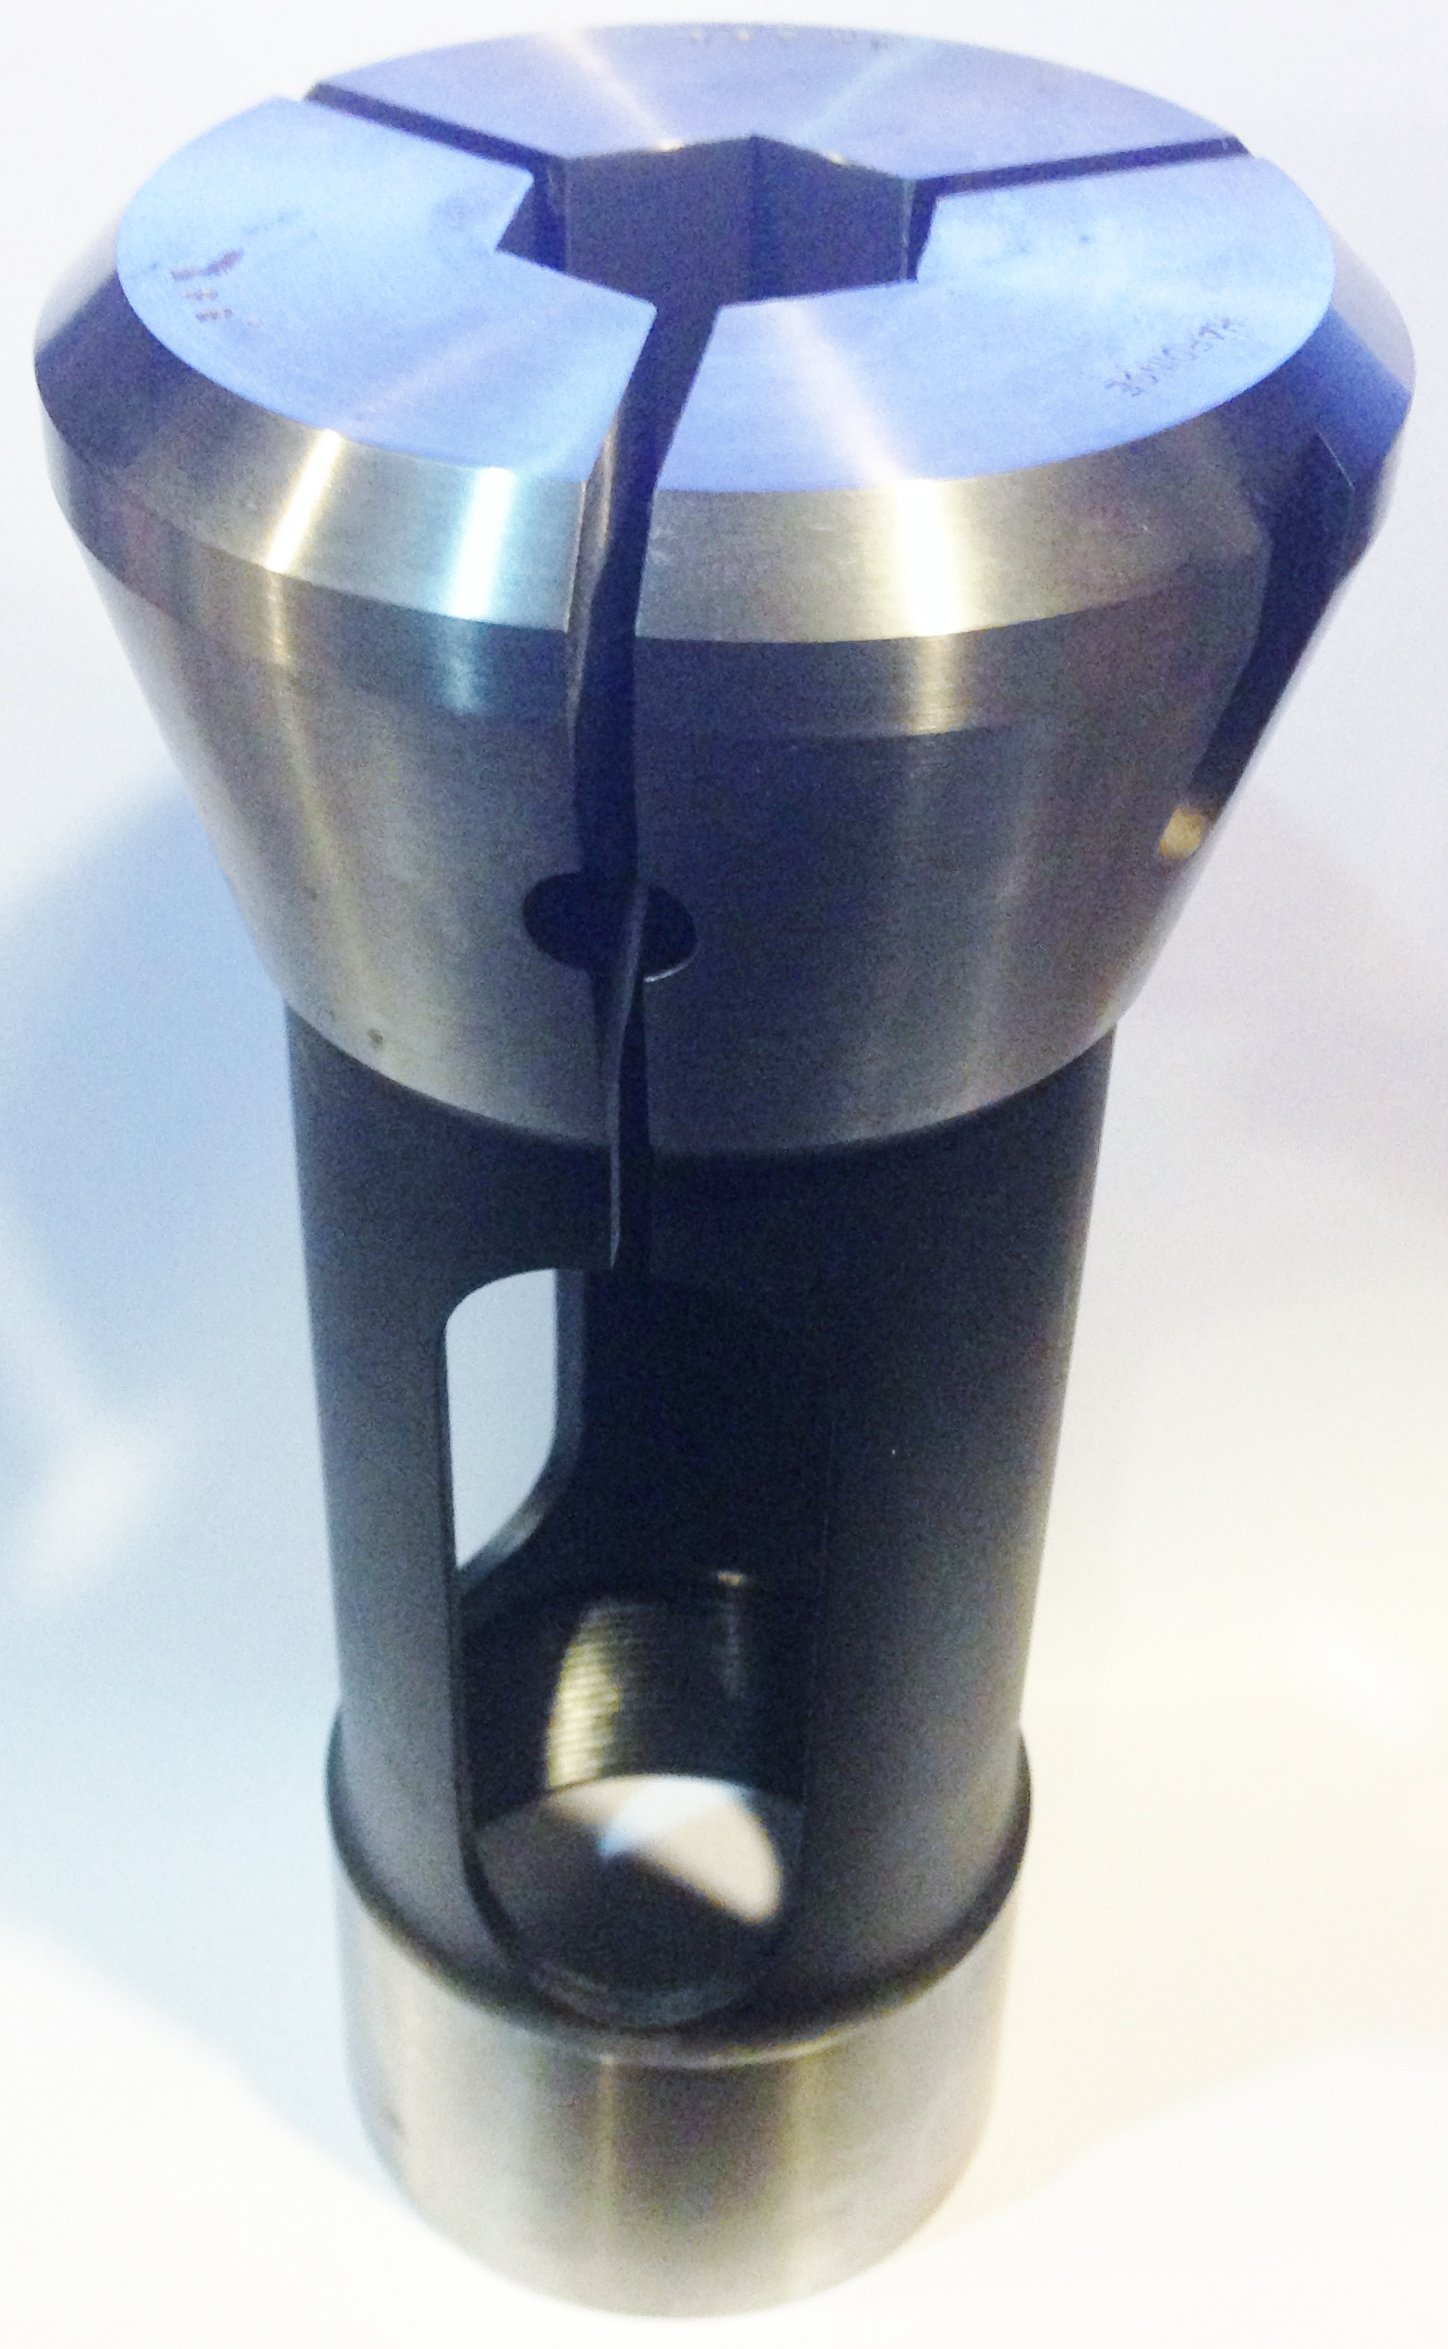 Hardinge AN6-40A Special Collet for AN6-40A Screw Machine